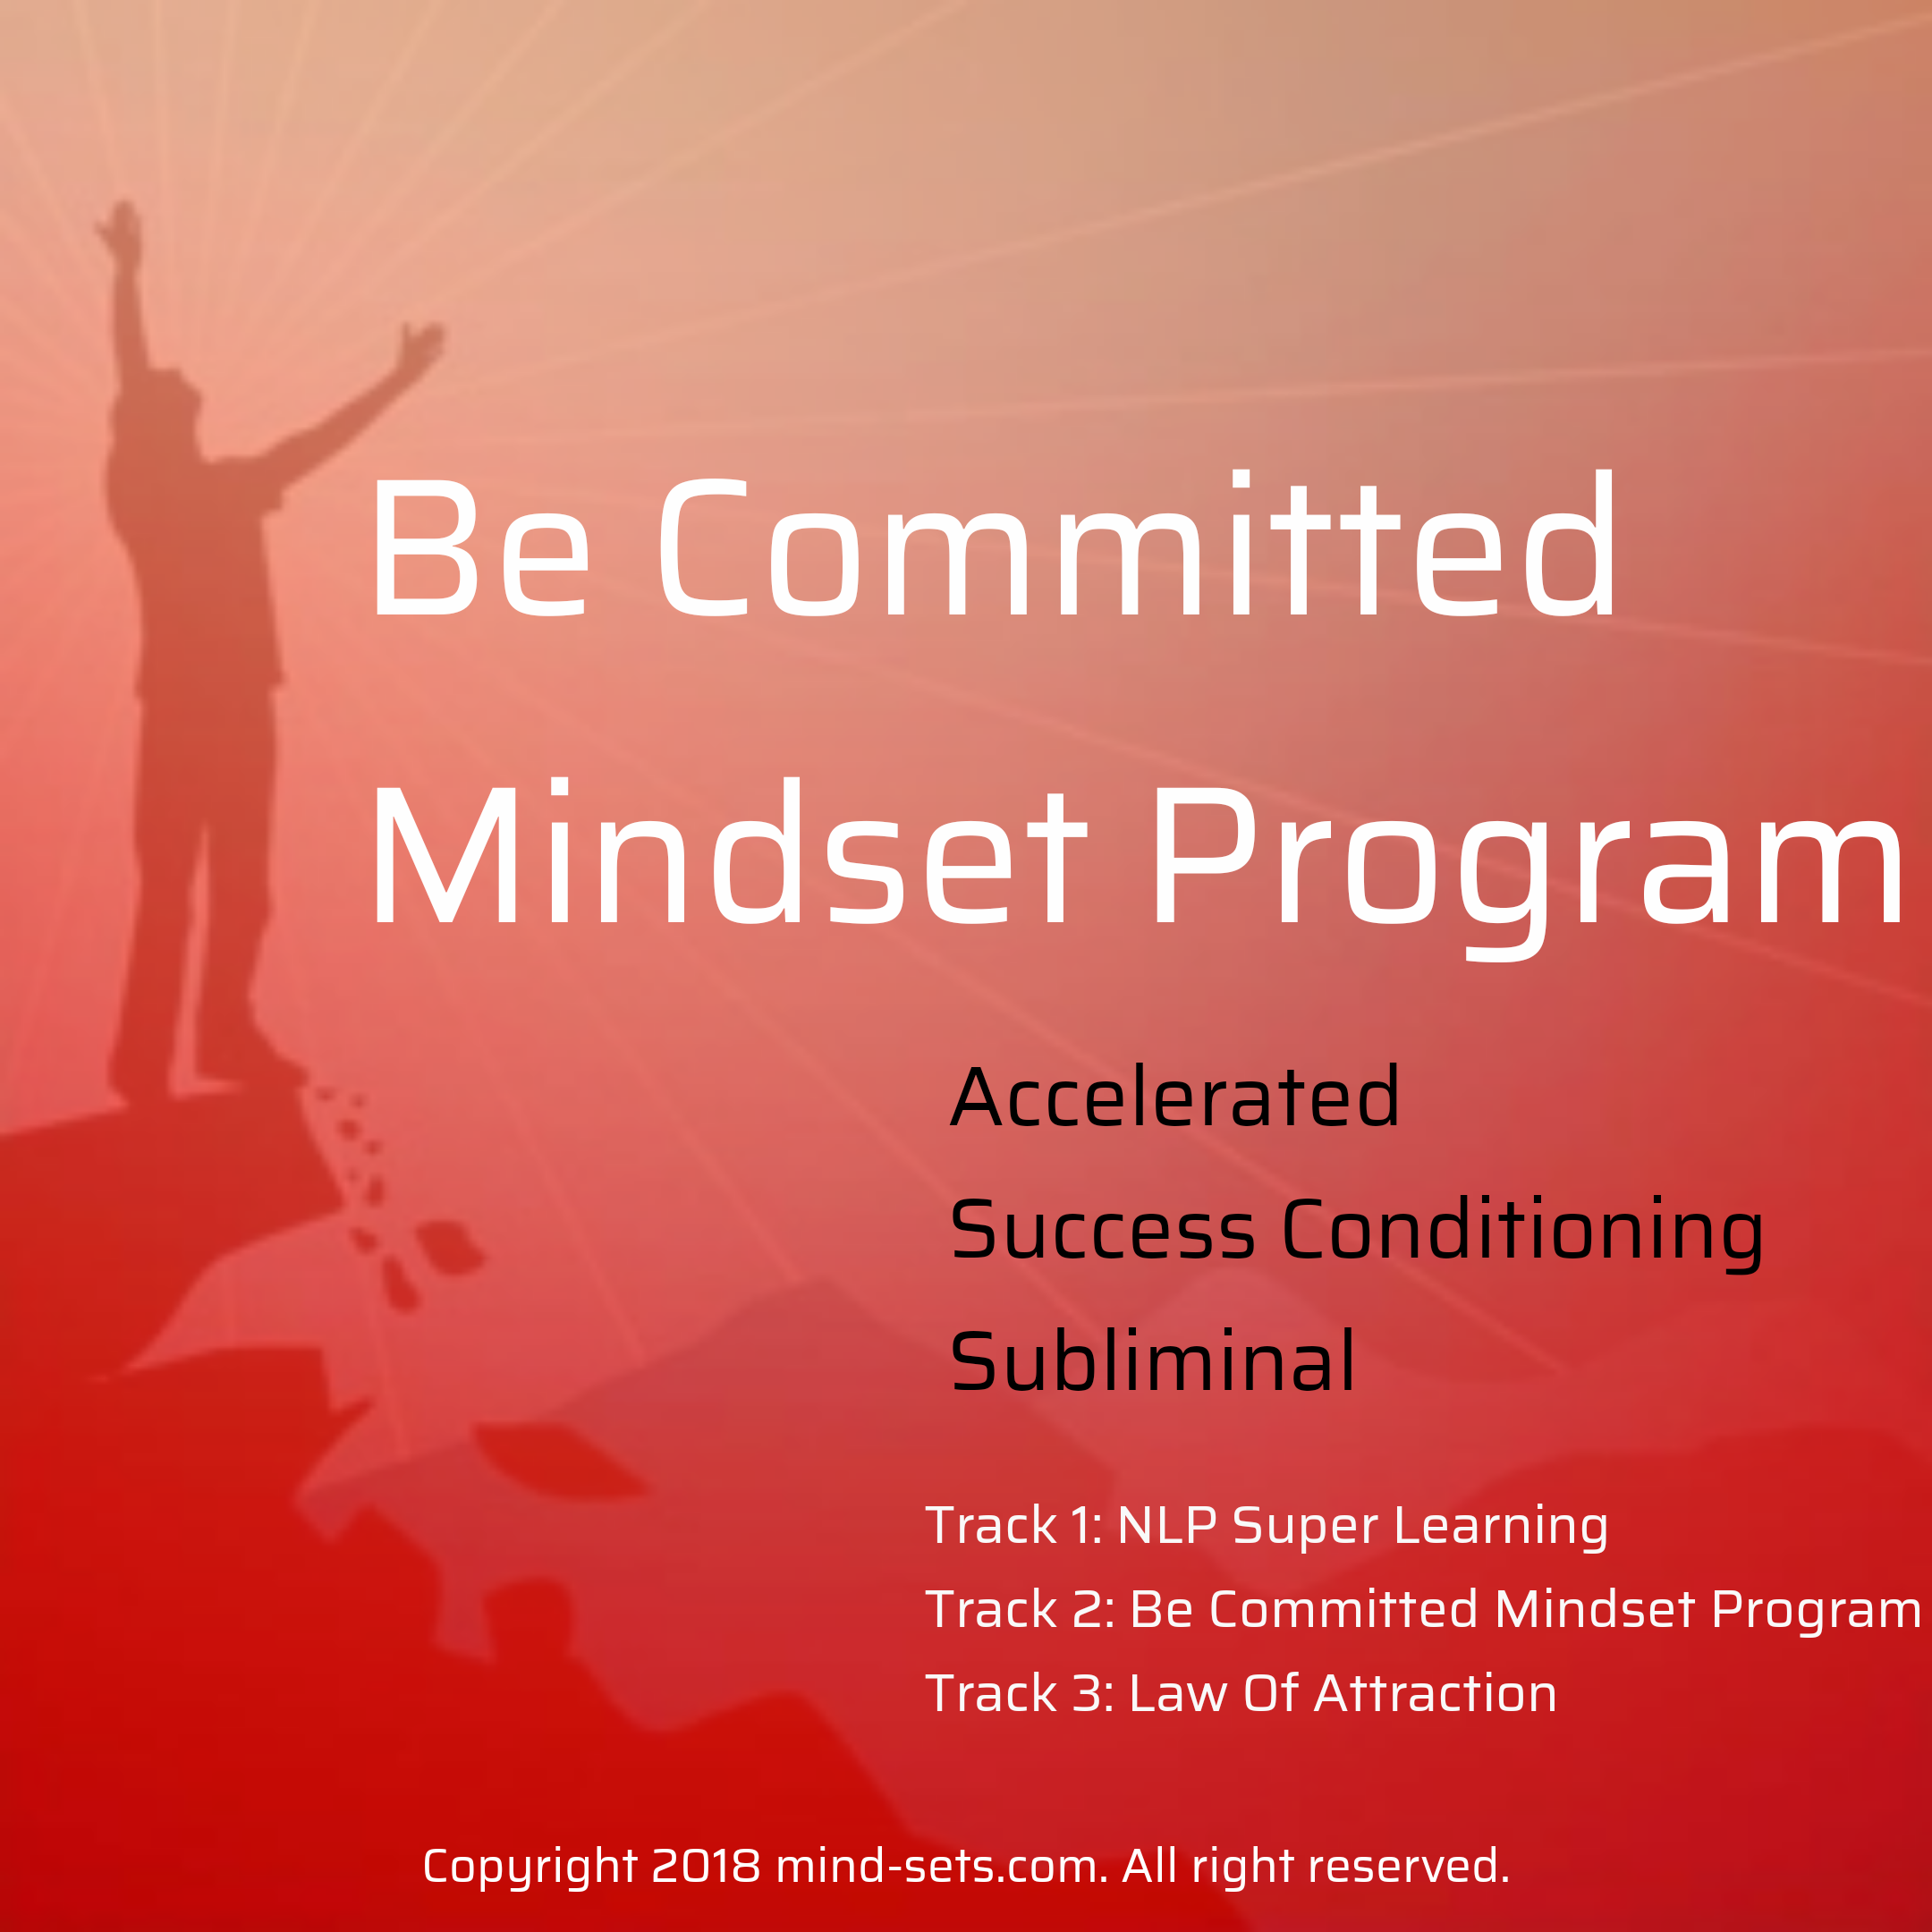 Be Committed Mindset Program